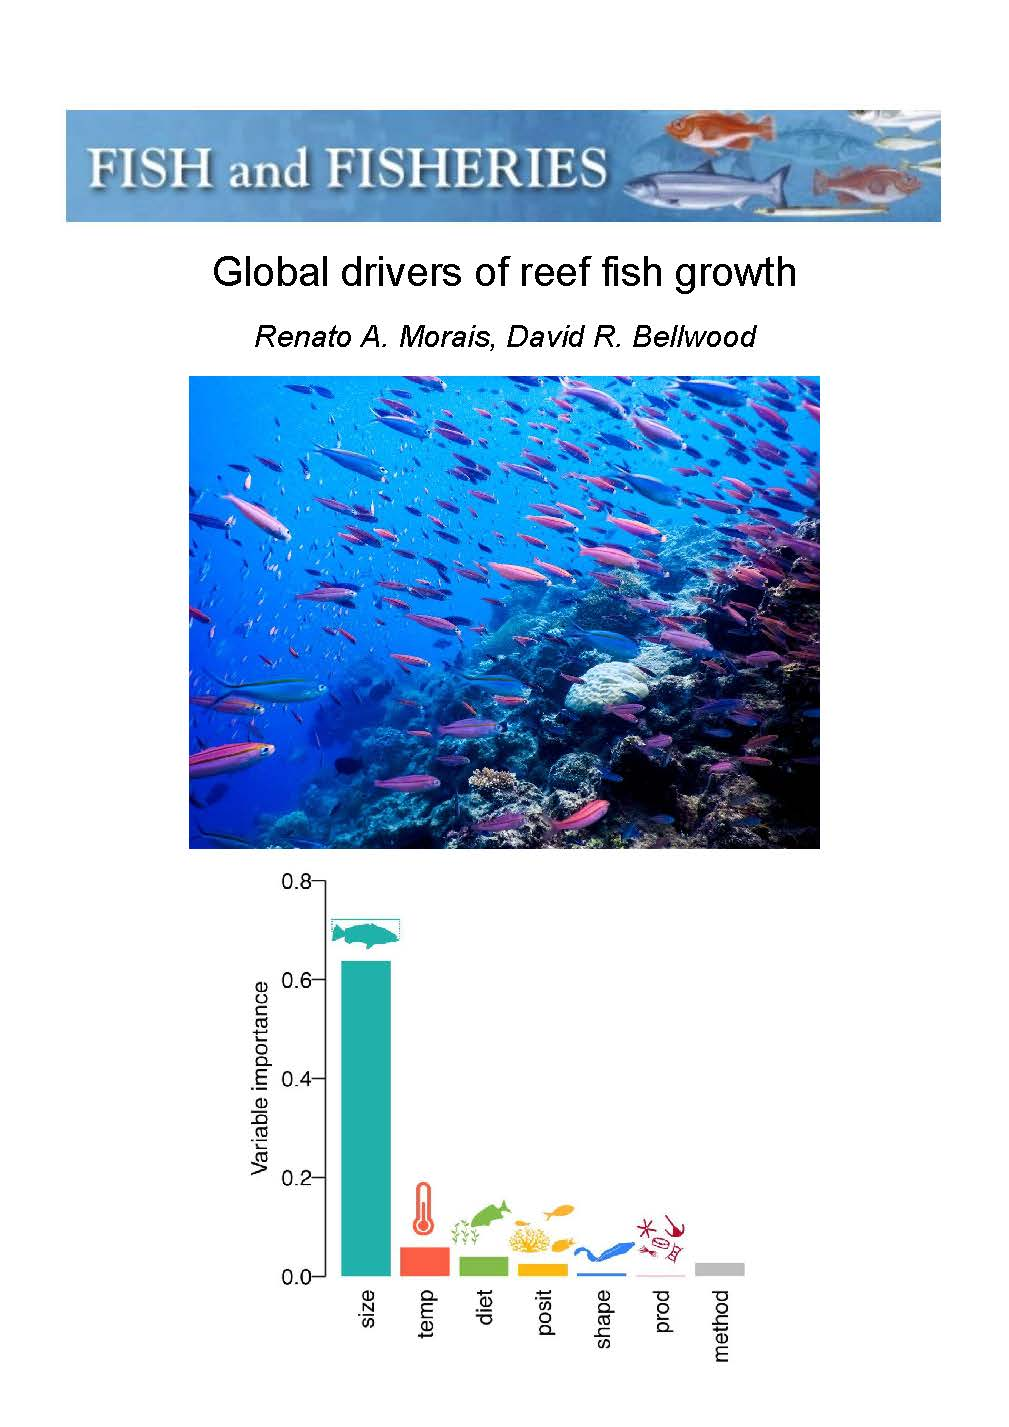 Morais and Bellwood 2018 (Fish and Fisheries).jpg